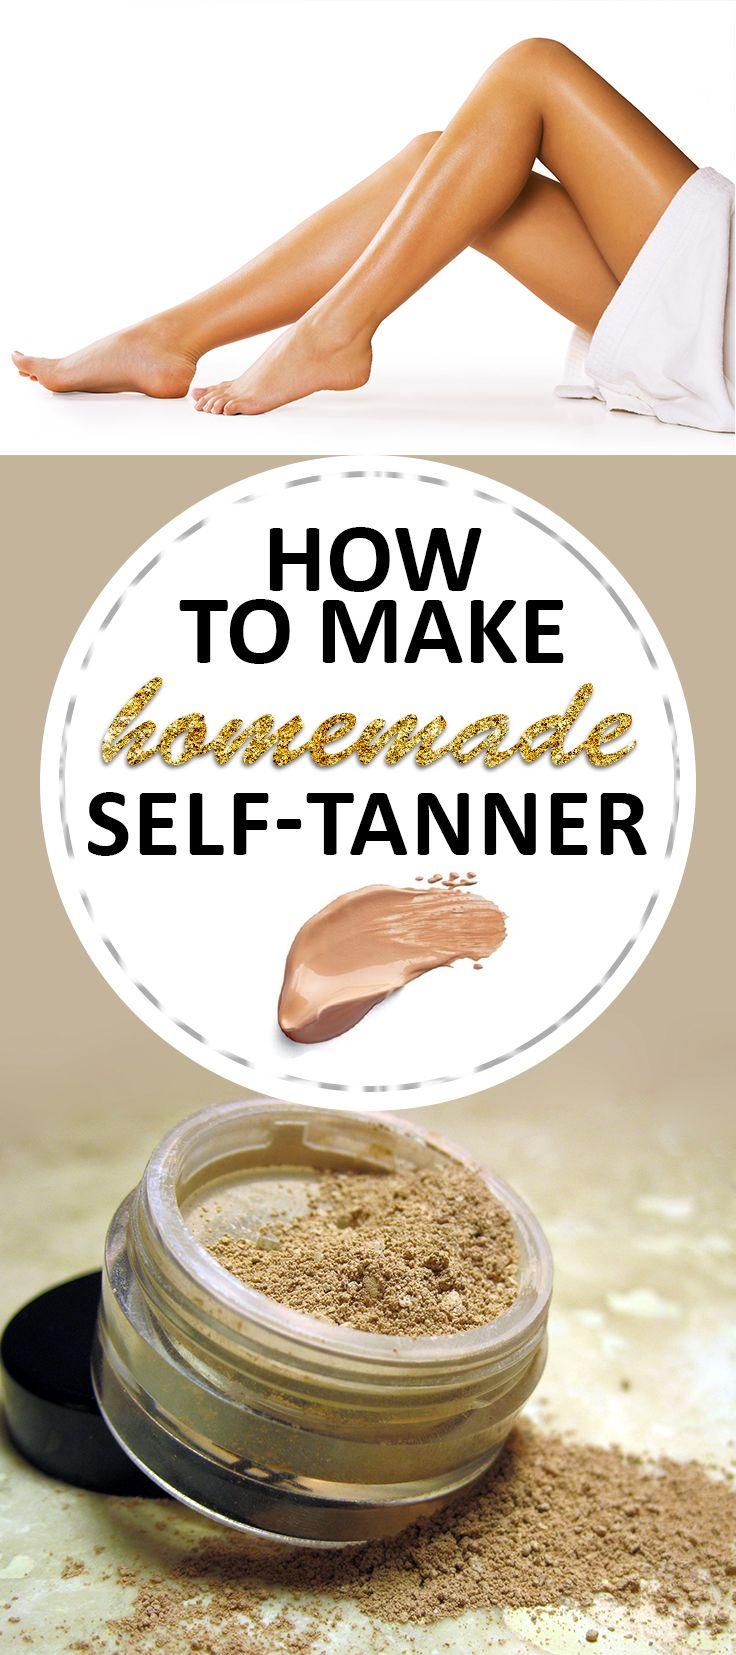 I did a little research and found an amazing self tanner that works wonders! It looks natural, and it's very easy to do! Turn that pale skin of yours into a beautiful summer tan! Check this out!